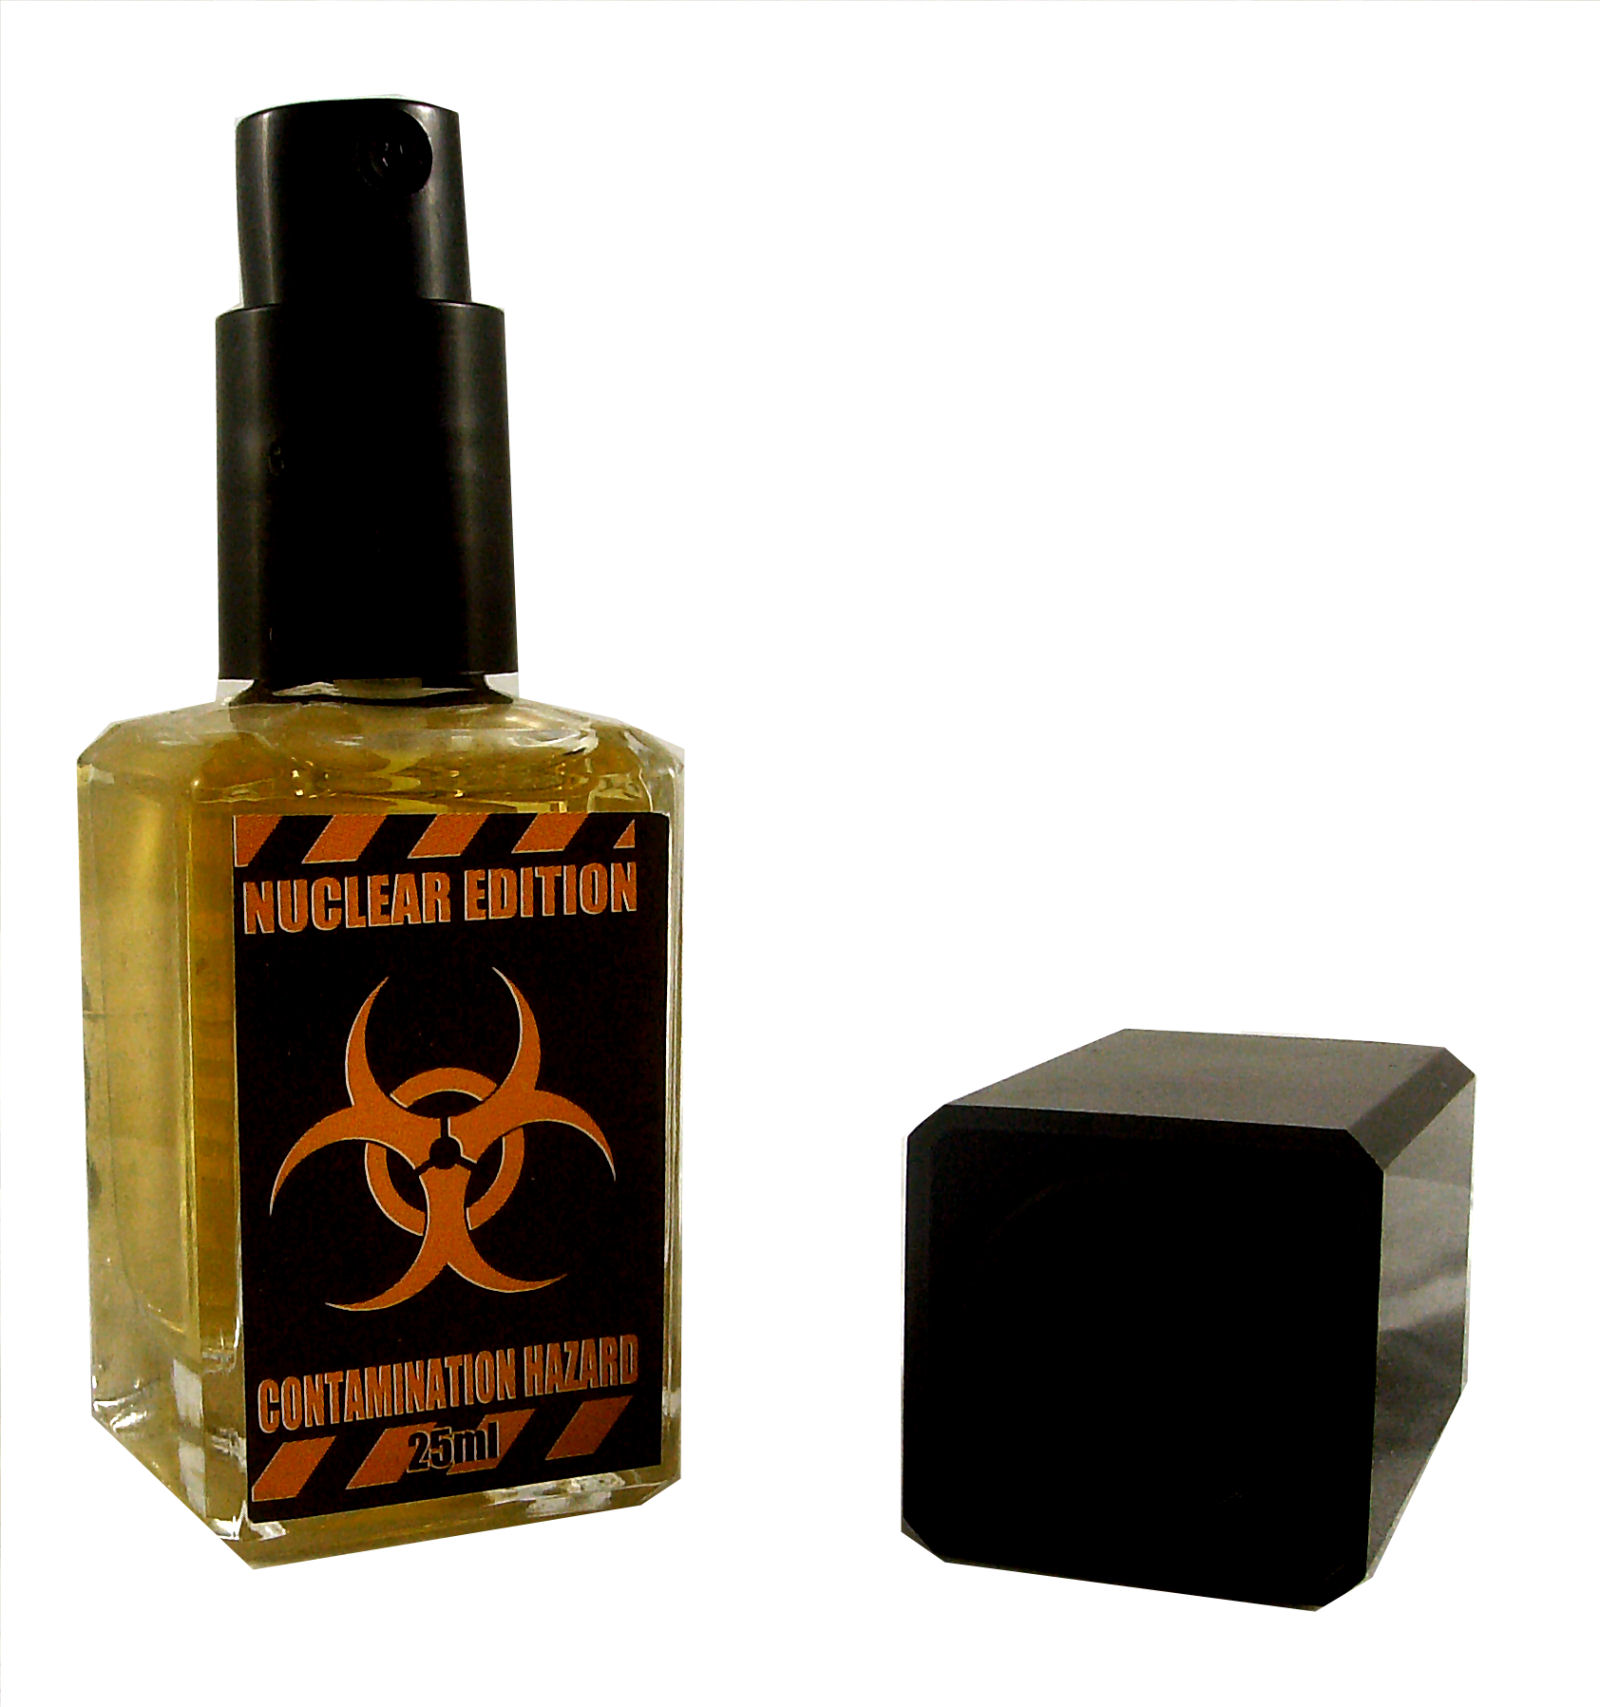 Contamination Hazard, 25ml Eau de Parfum